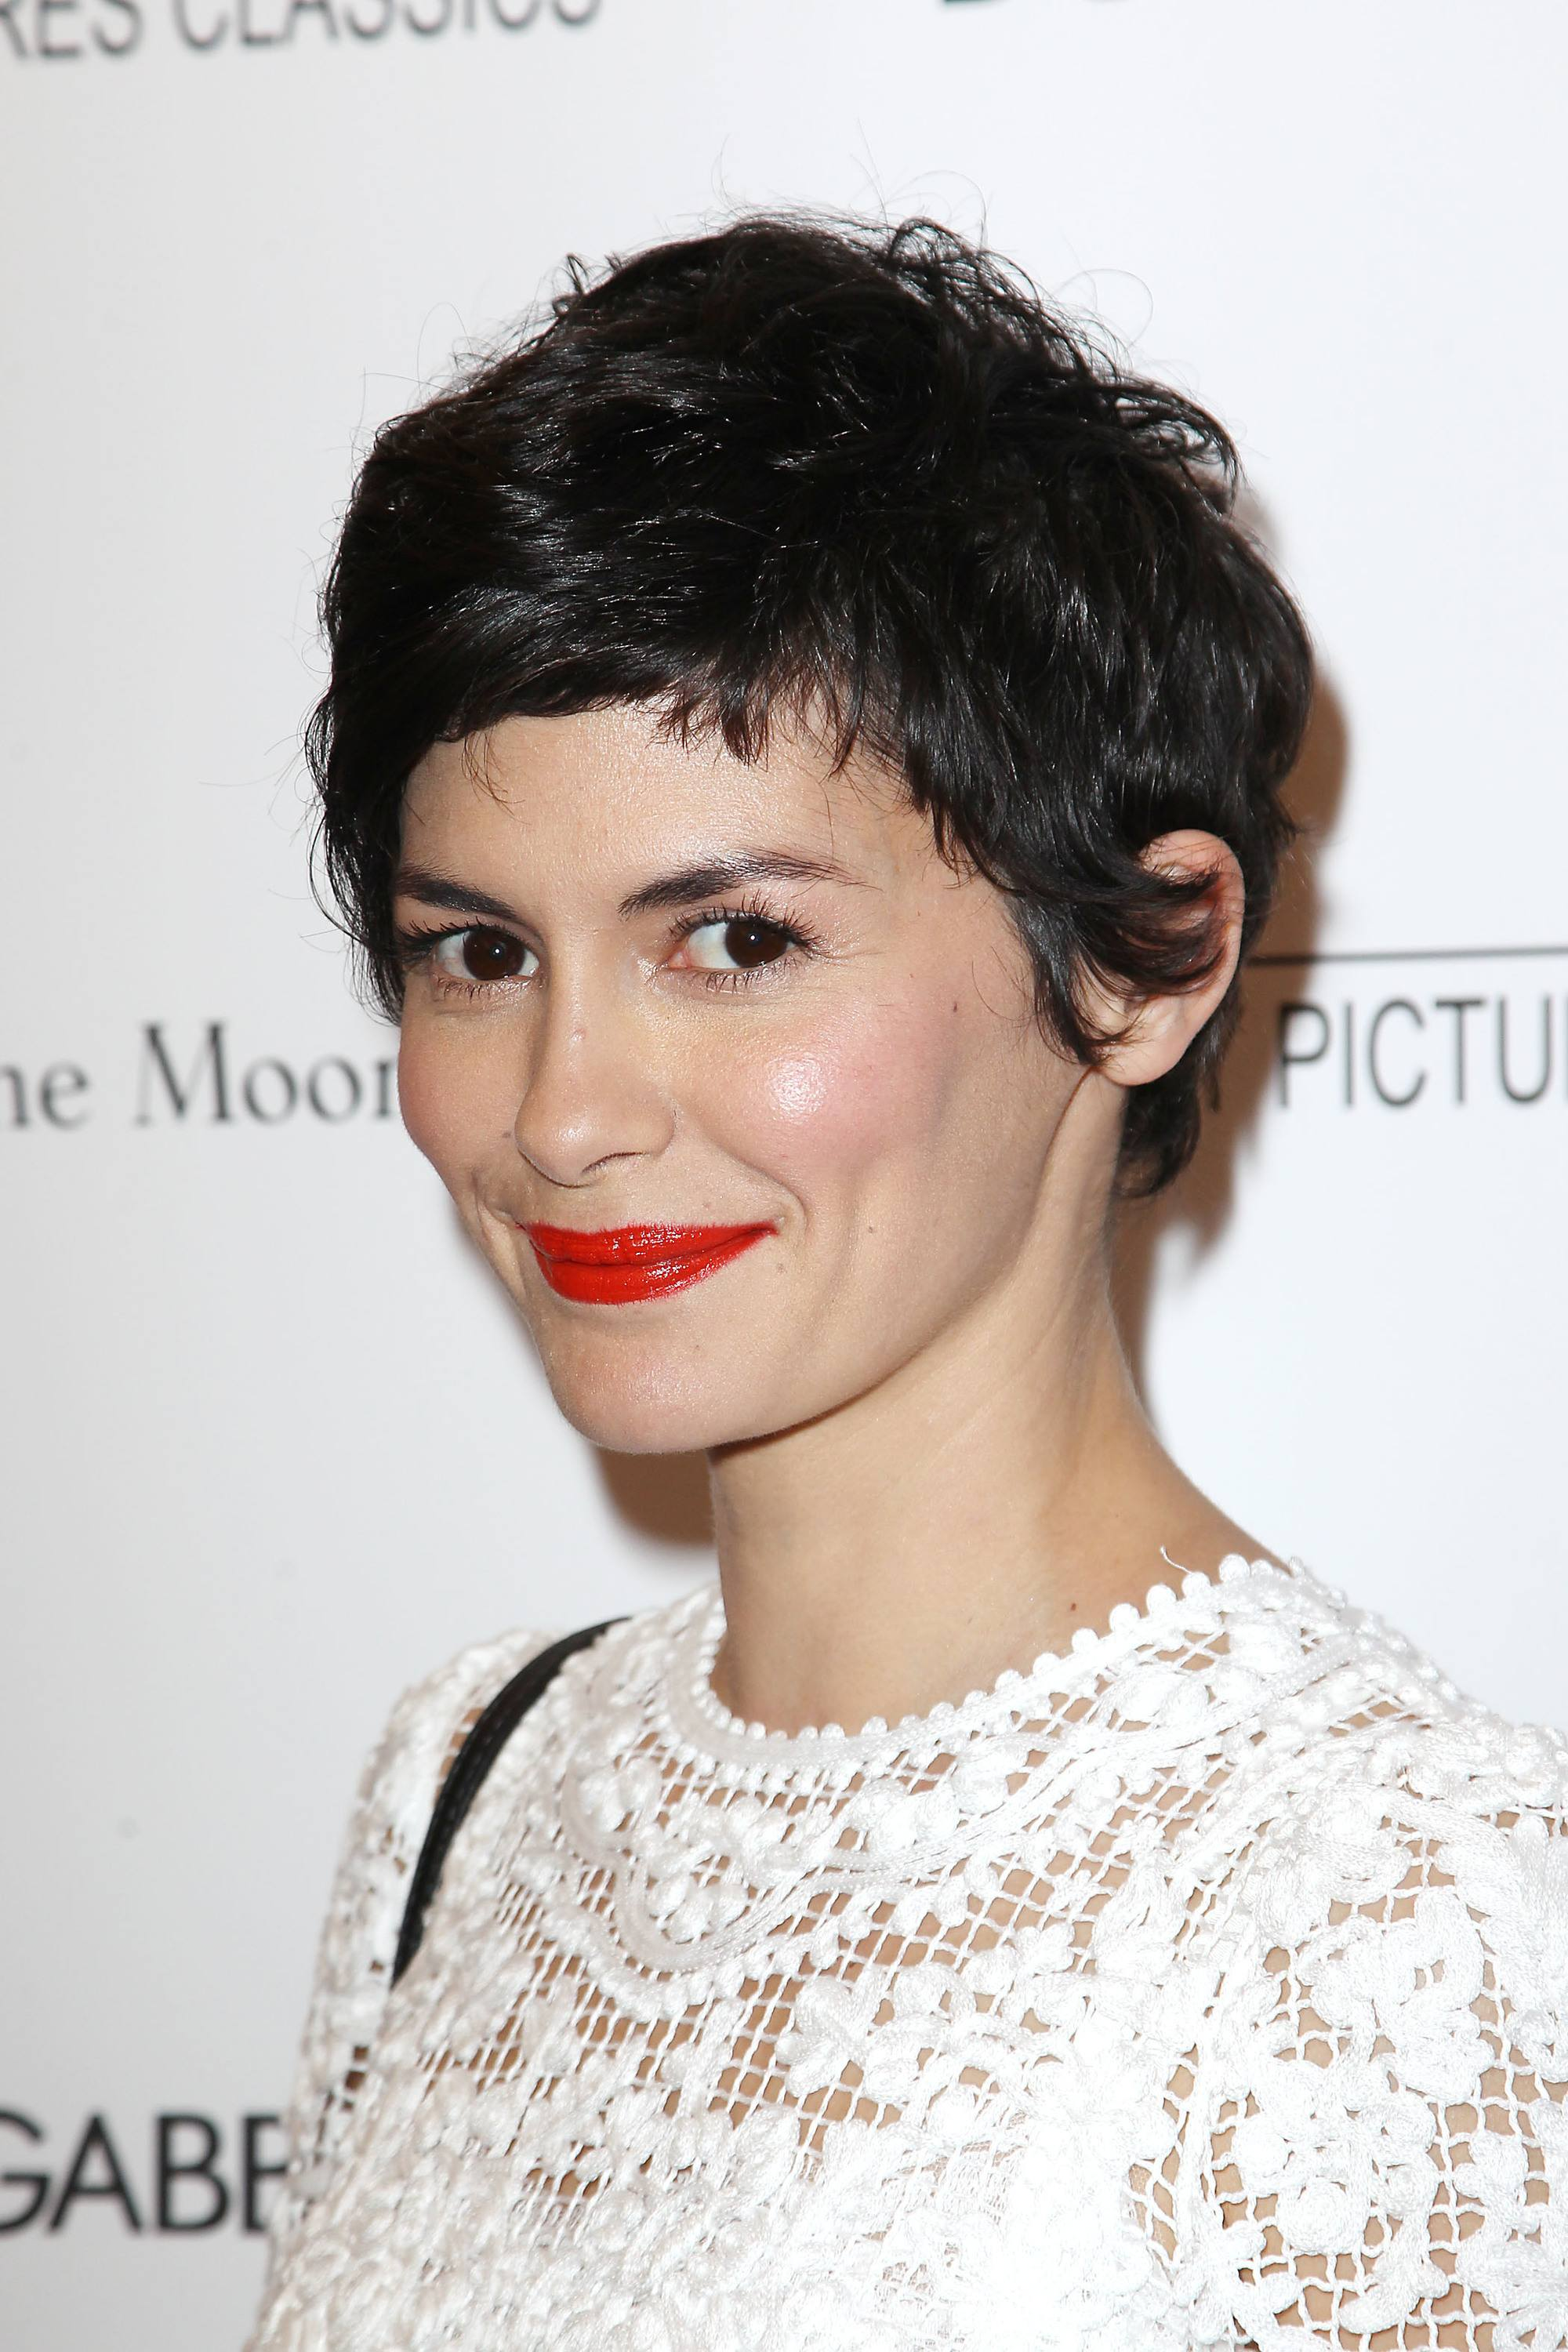 haircut ideas for round faces: audrey tautou with messy pixie cut on the red carpet